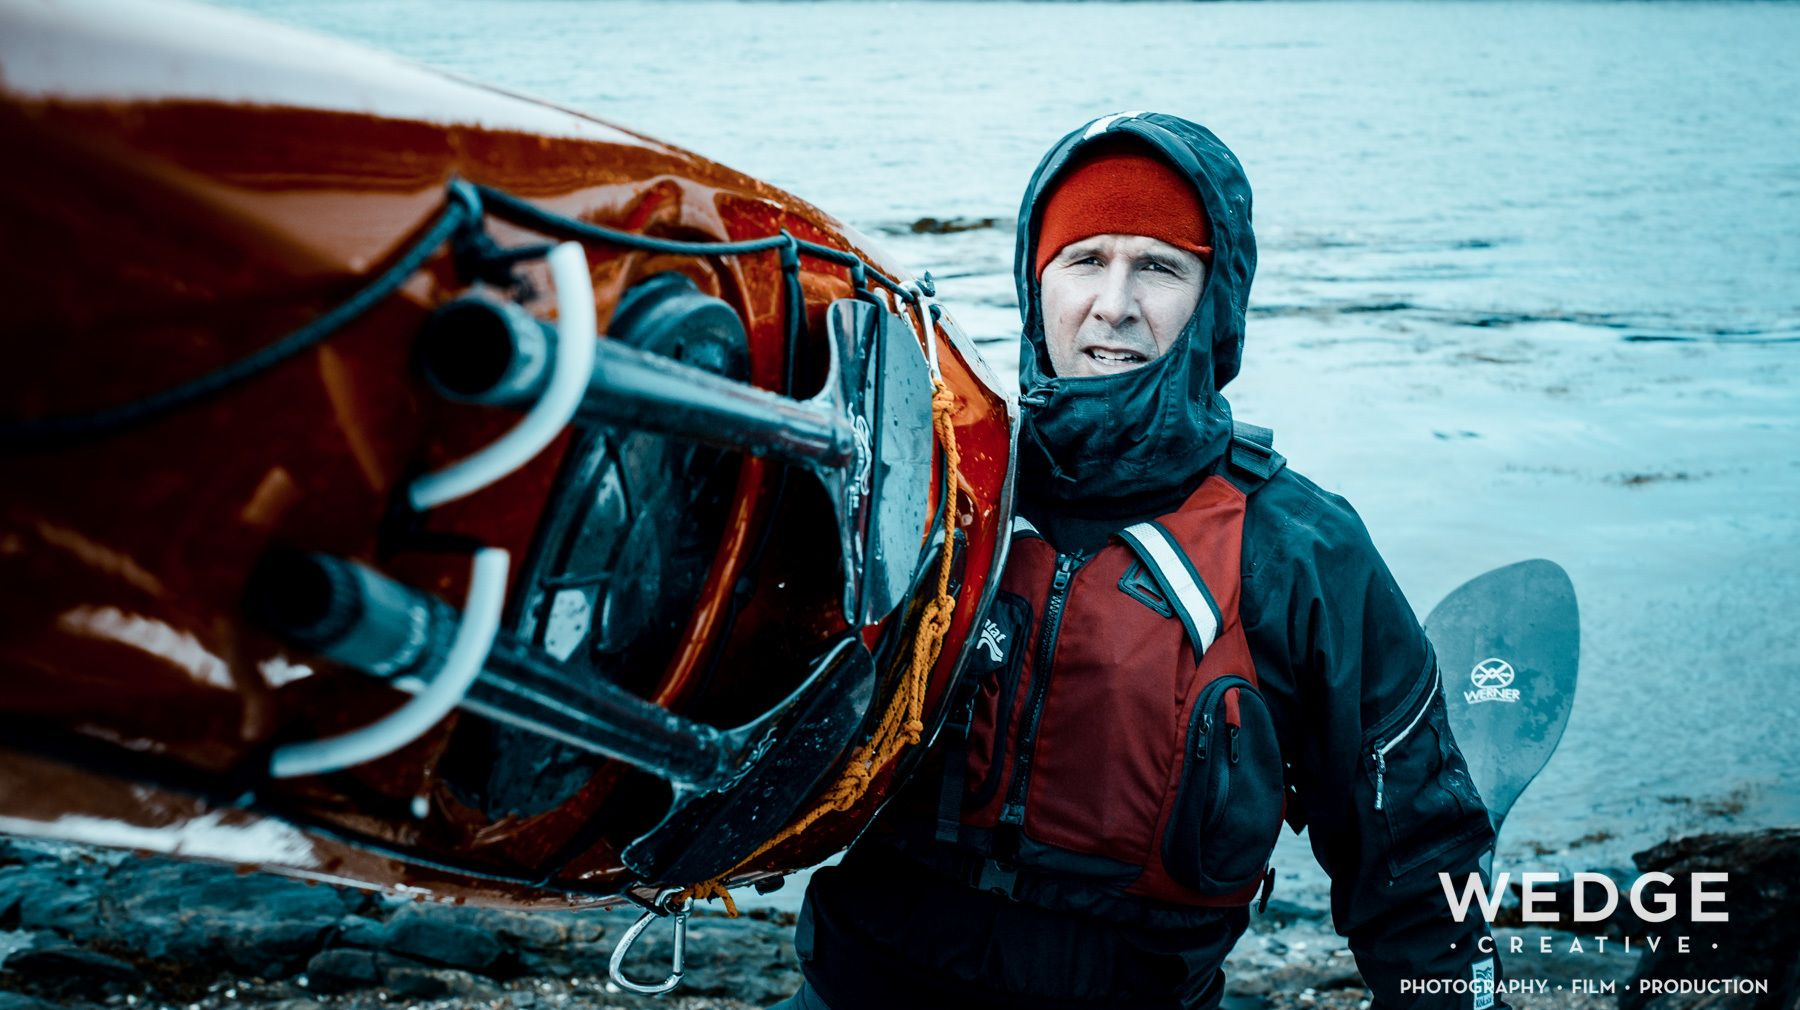 © WEDGE Creative: Photography, Film, Production: Arctic sea kayaking photo campaign with Kokatat brand paddling drysuits and PFDs.